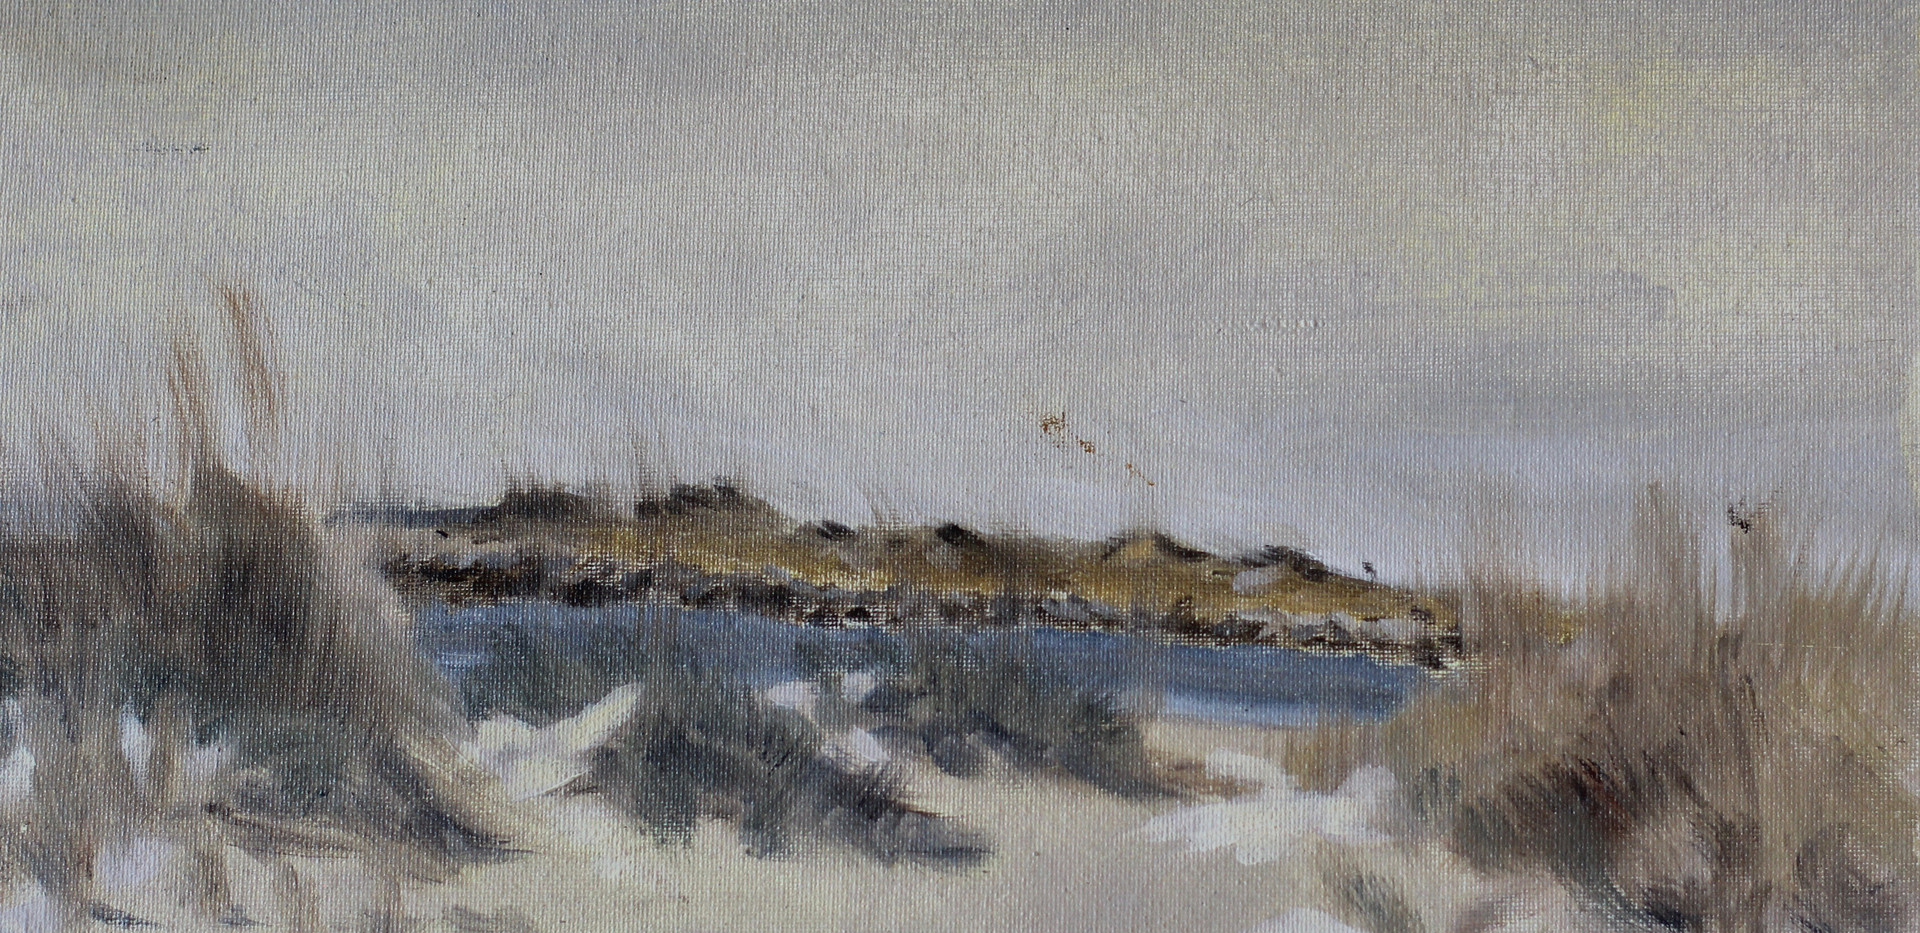 Study of South End